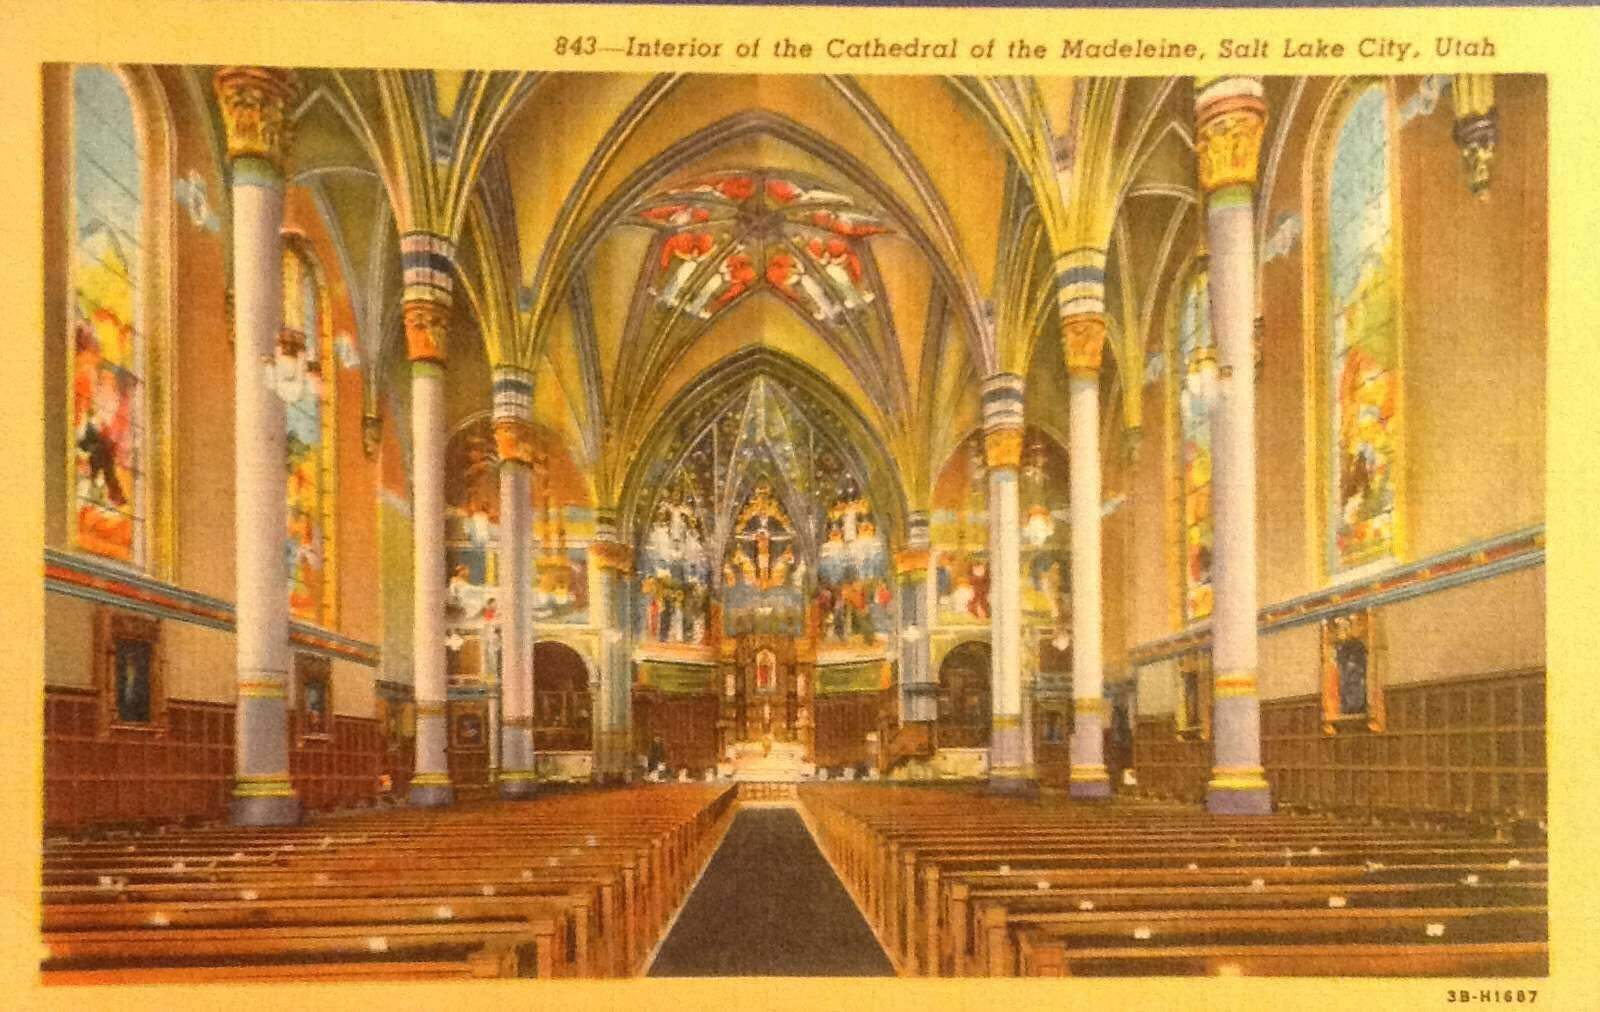 Interior of the cathedral of the madeleine salt lake city linen interior of the cathedral of the madeleine salt lake city linen kristyandbryce Image collections